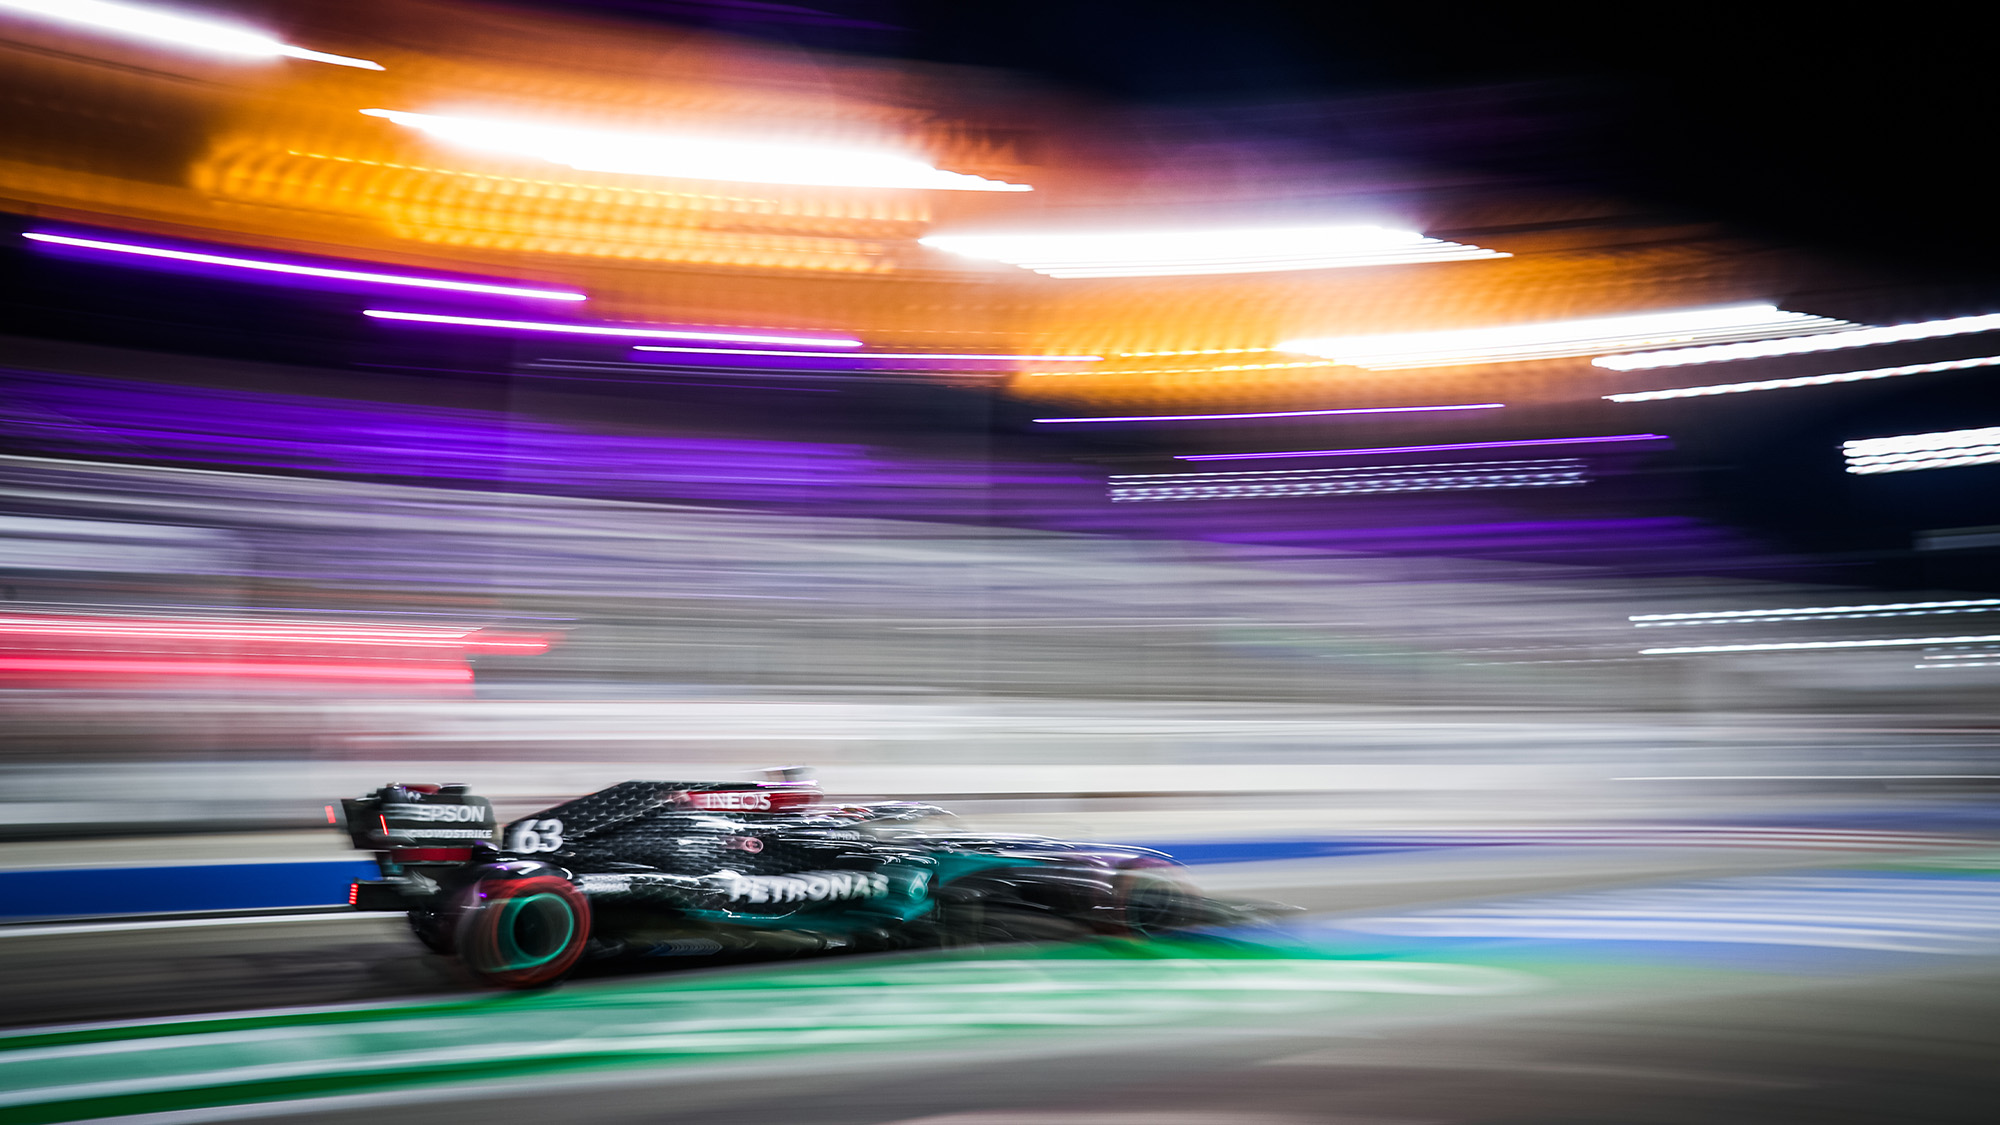 Blurred picture of George Russell's Mercedes in practice for the 2020 Sakhir Grand Prix